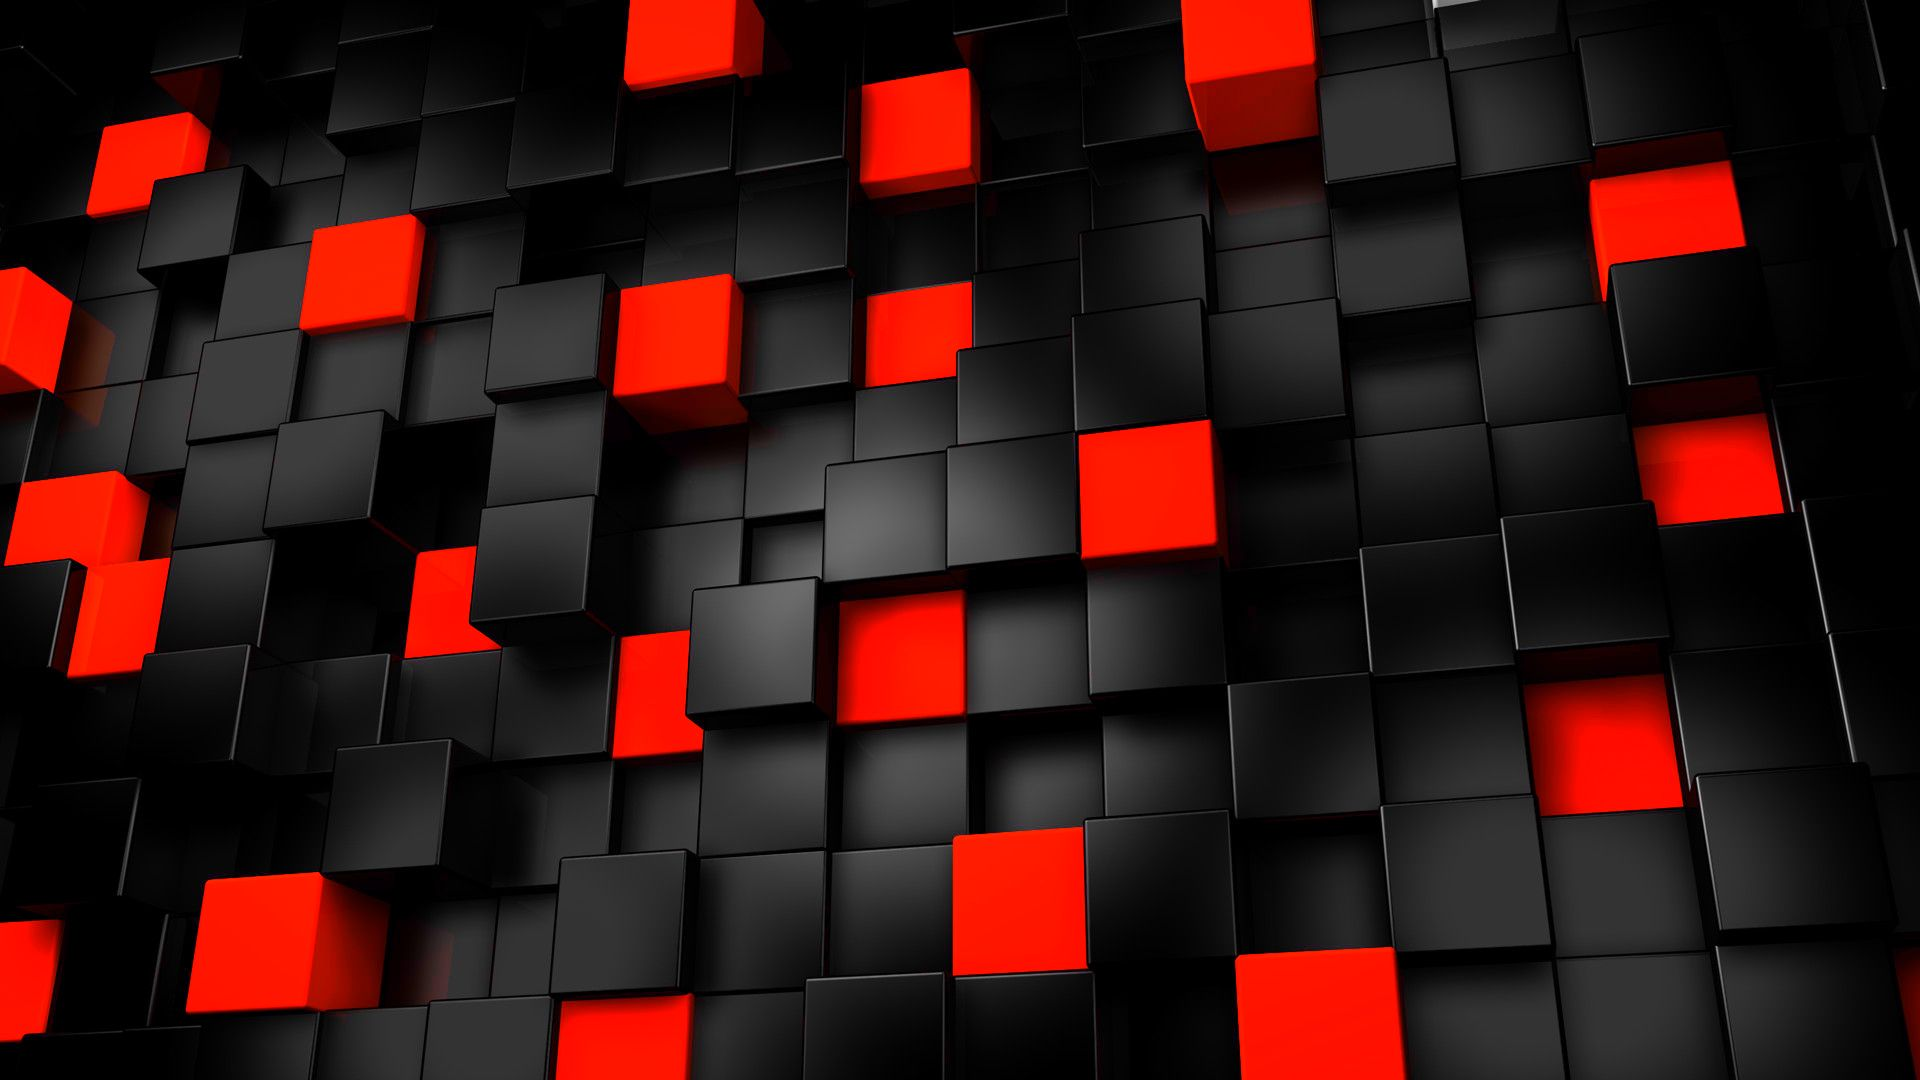 Image For Abstract Art Black And White Red Wallpaper Hd